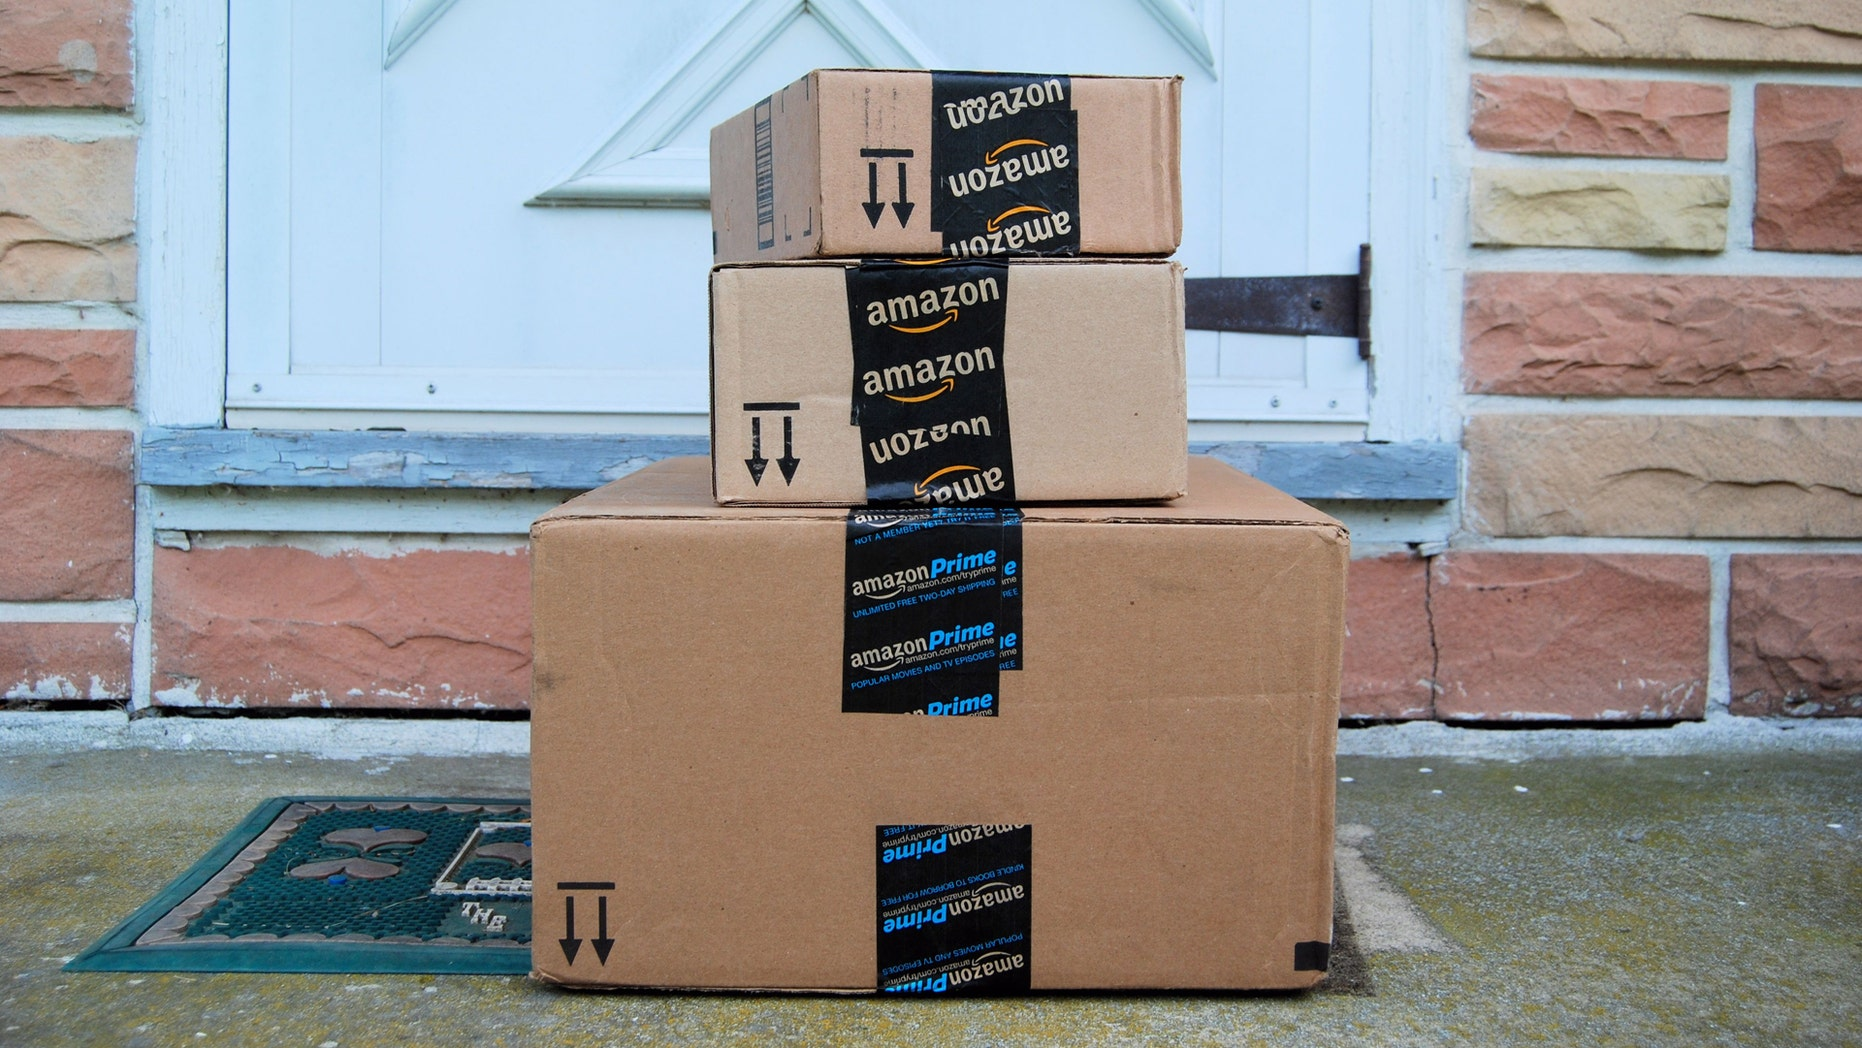 Hagerstown, MD, USA - June 2, 2014: Image of an Amazon package. Amazon is an online company and is the largest retailer in the world.